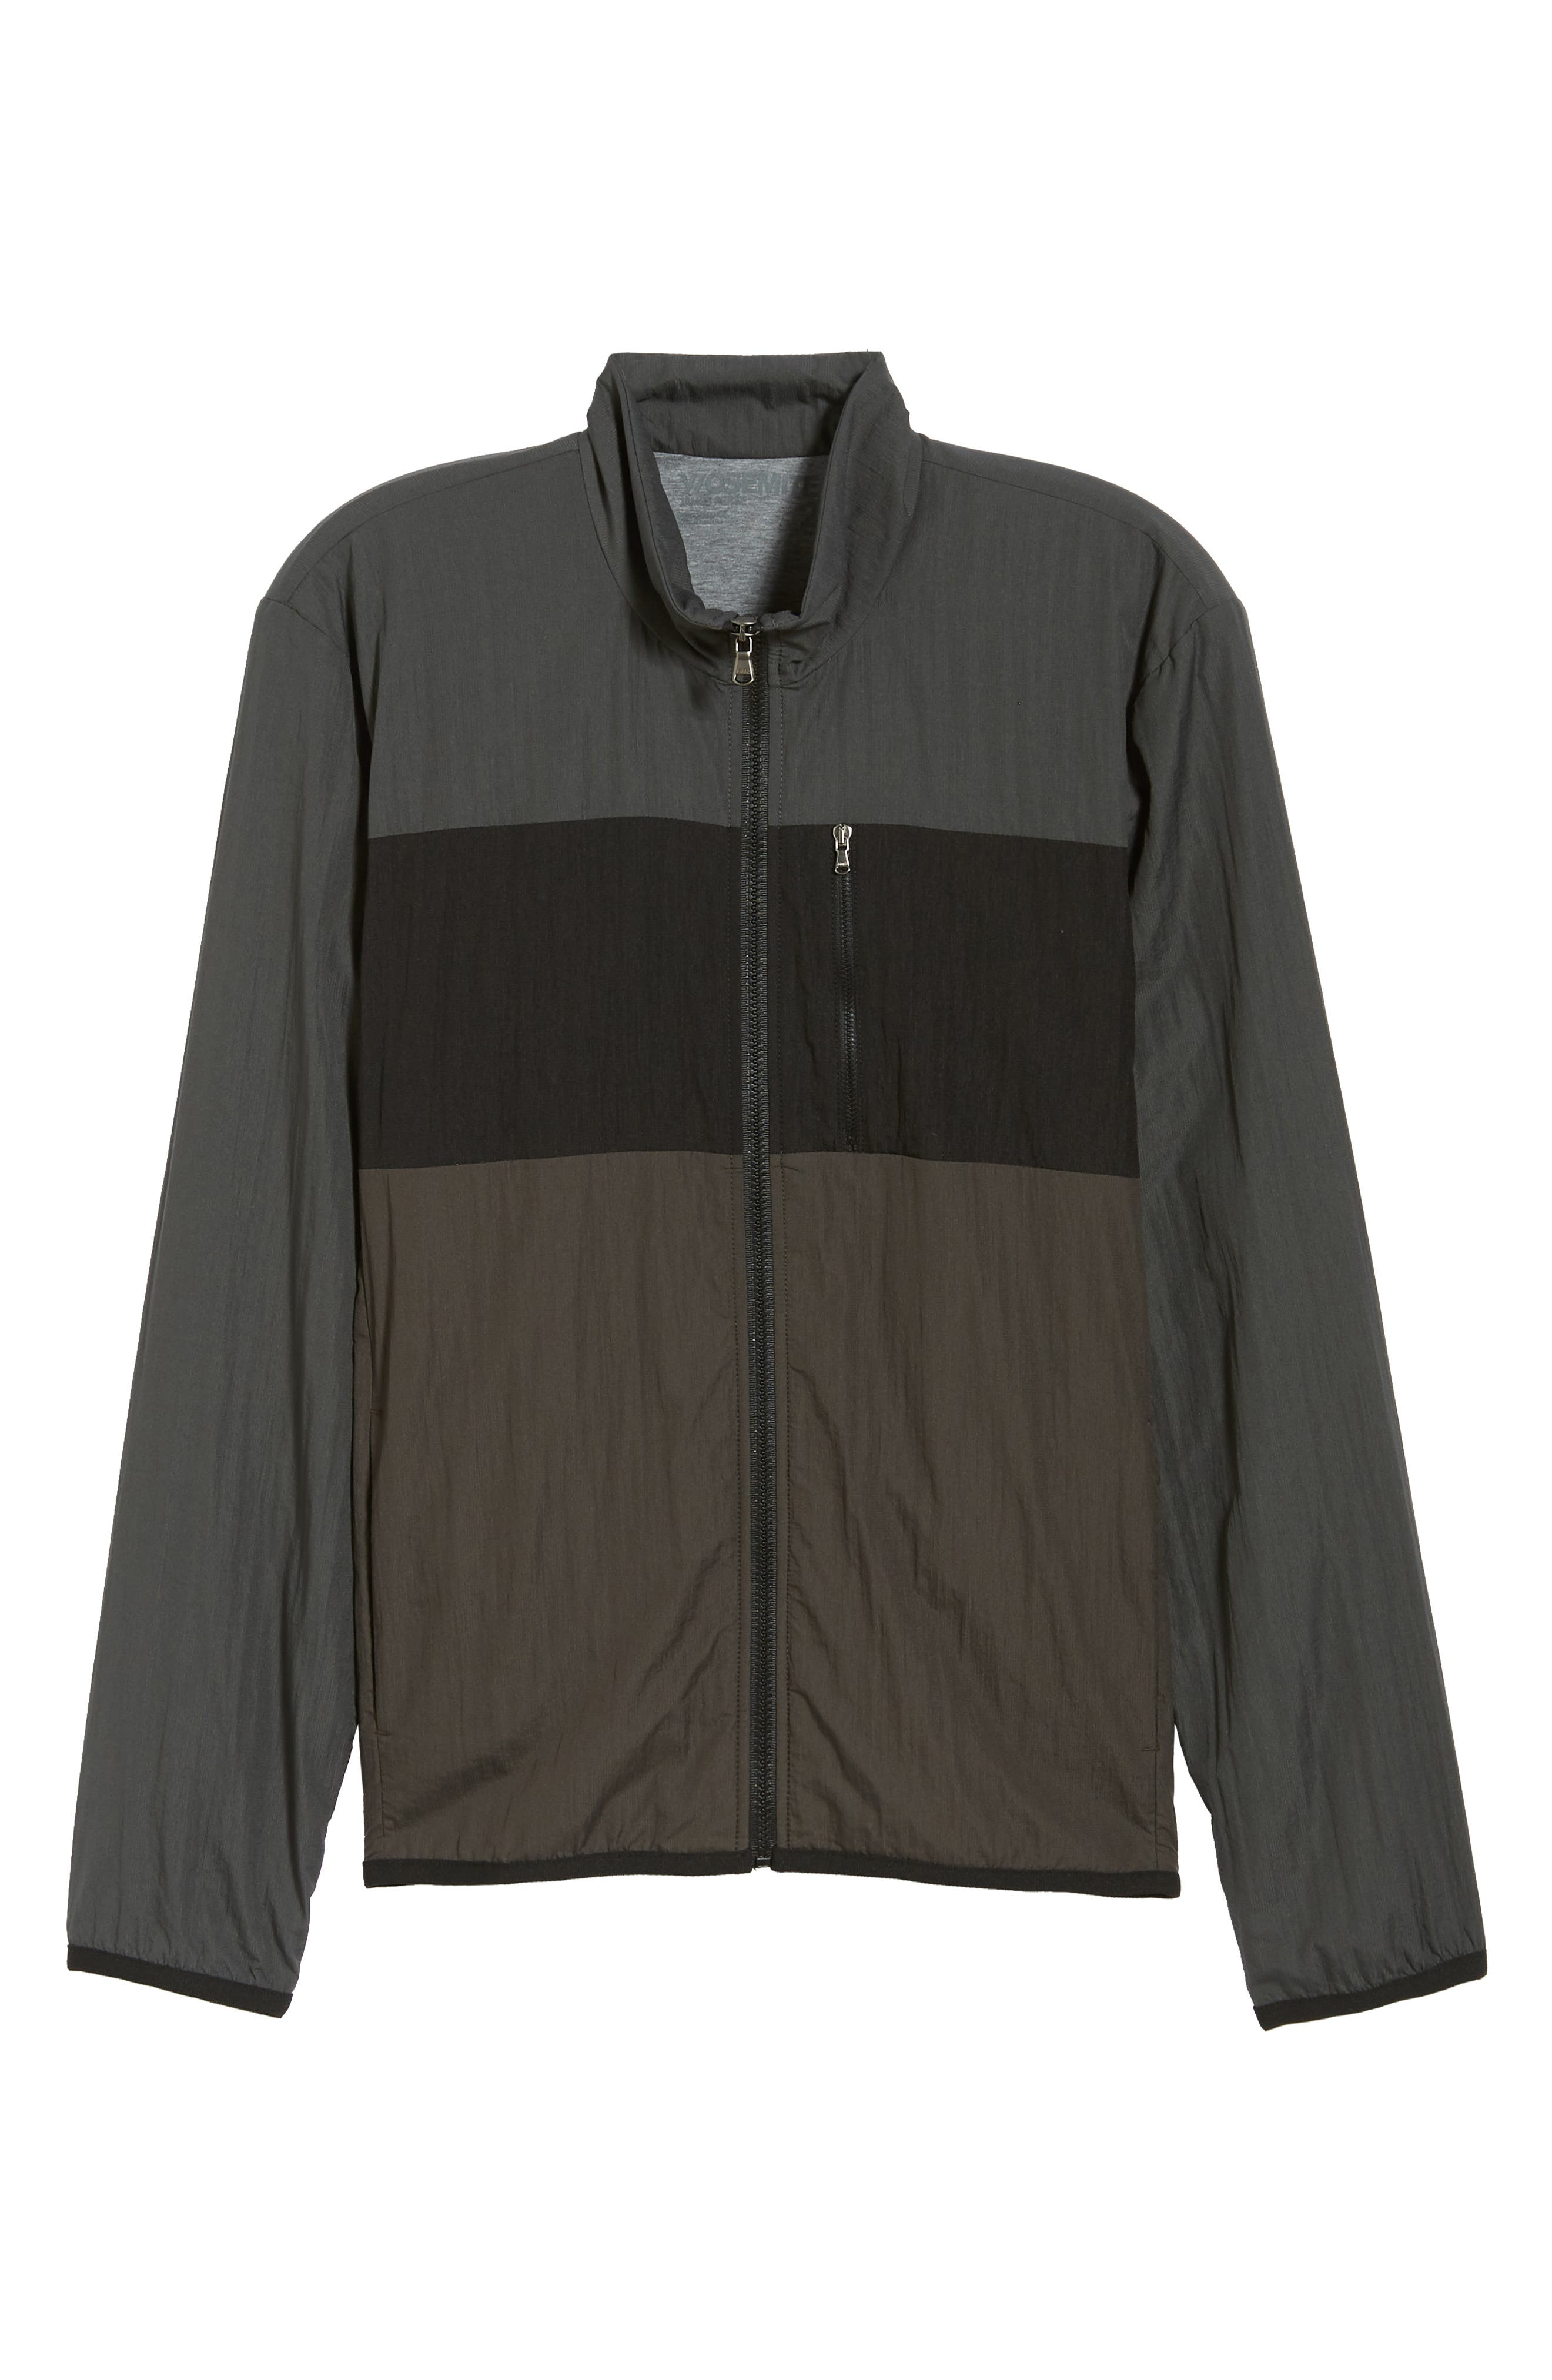 Stripe Ripstop Jacket,                             Alternate thumbnail 6, color,                             Pipe/ Black/ Abyss